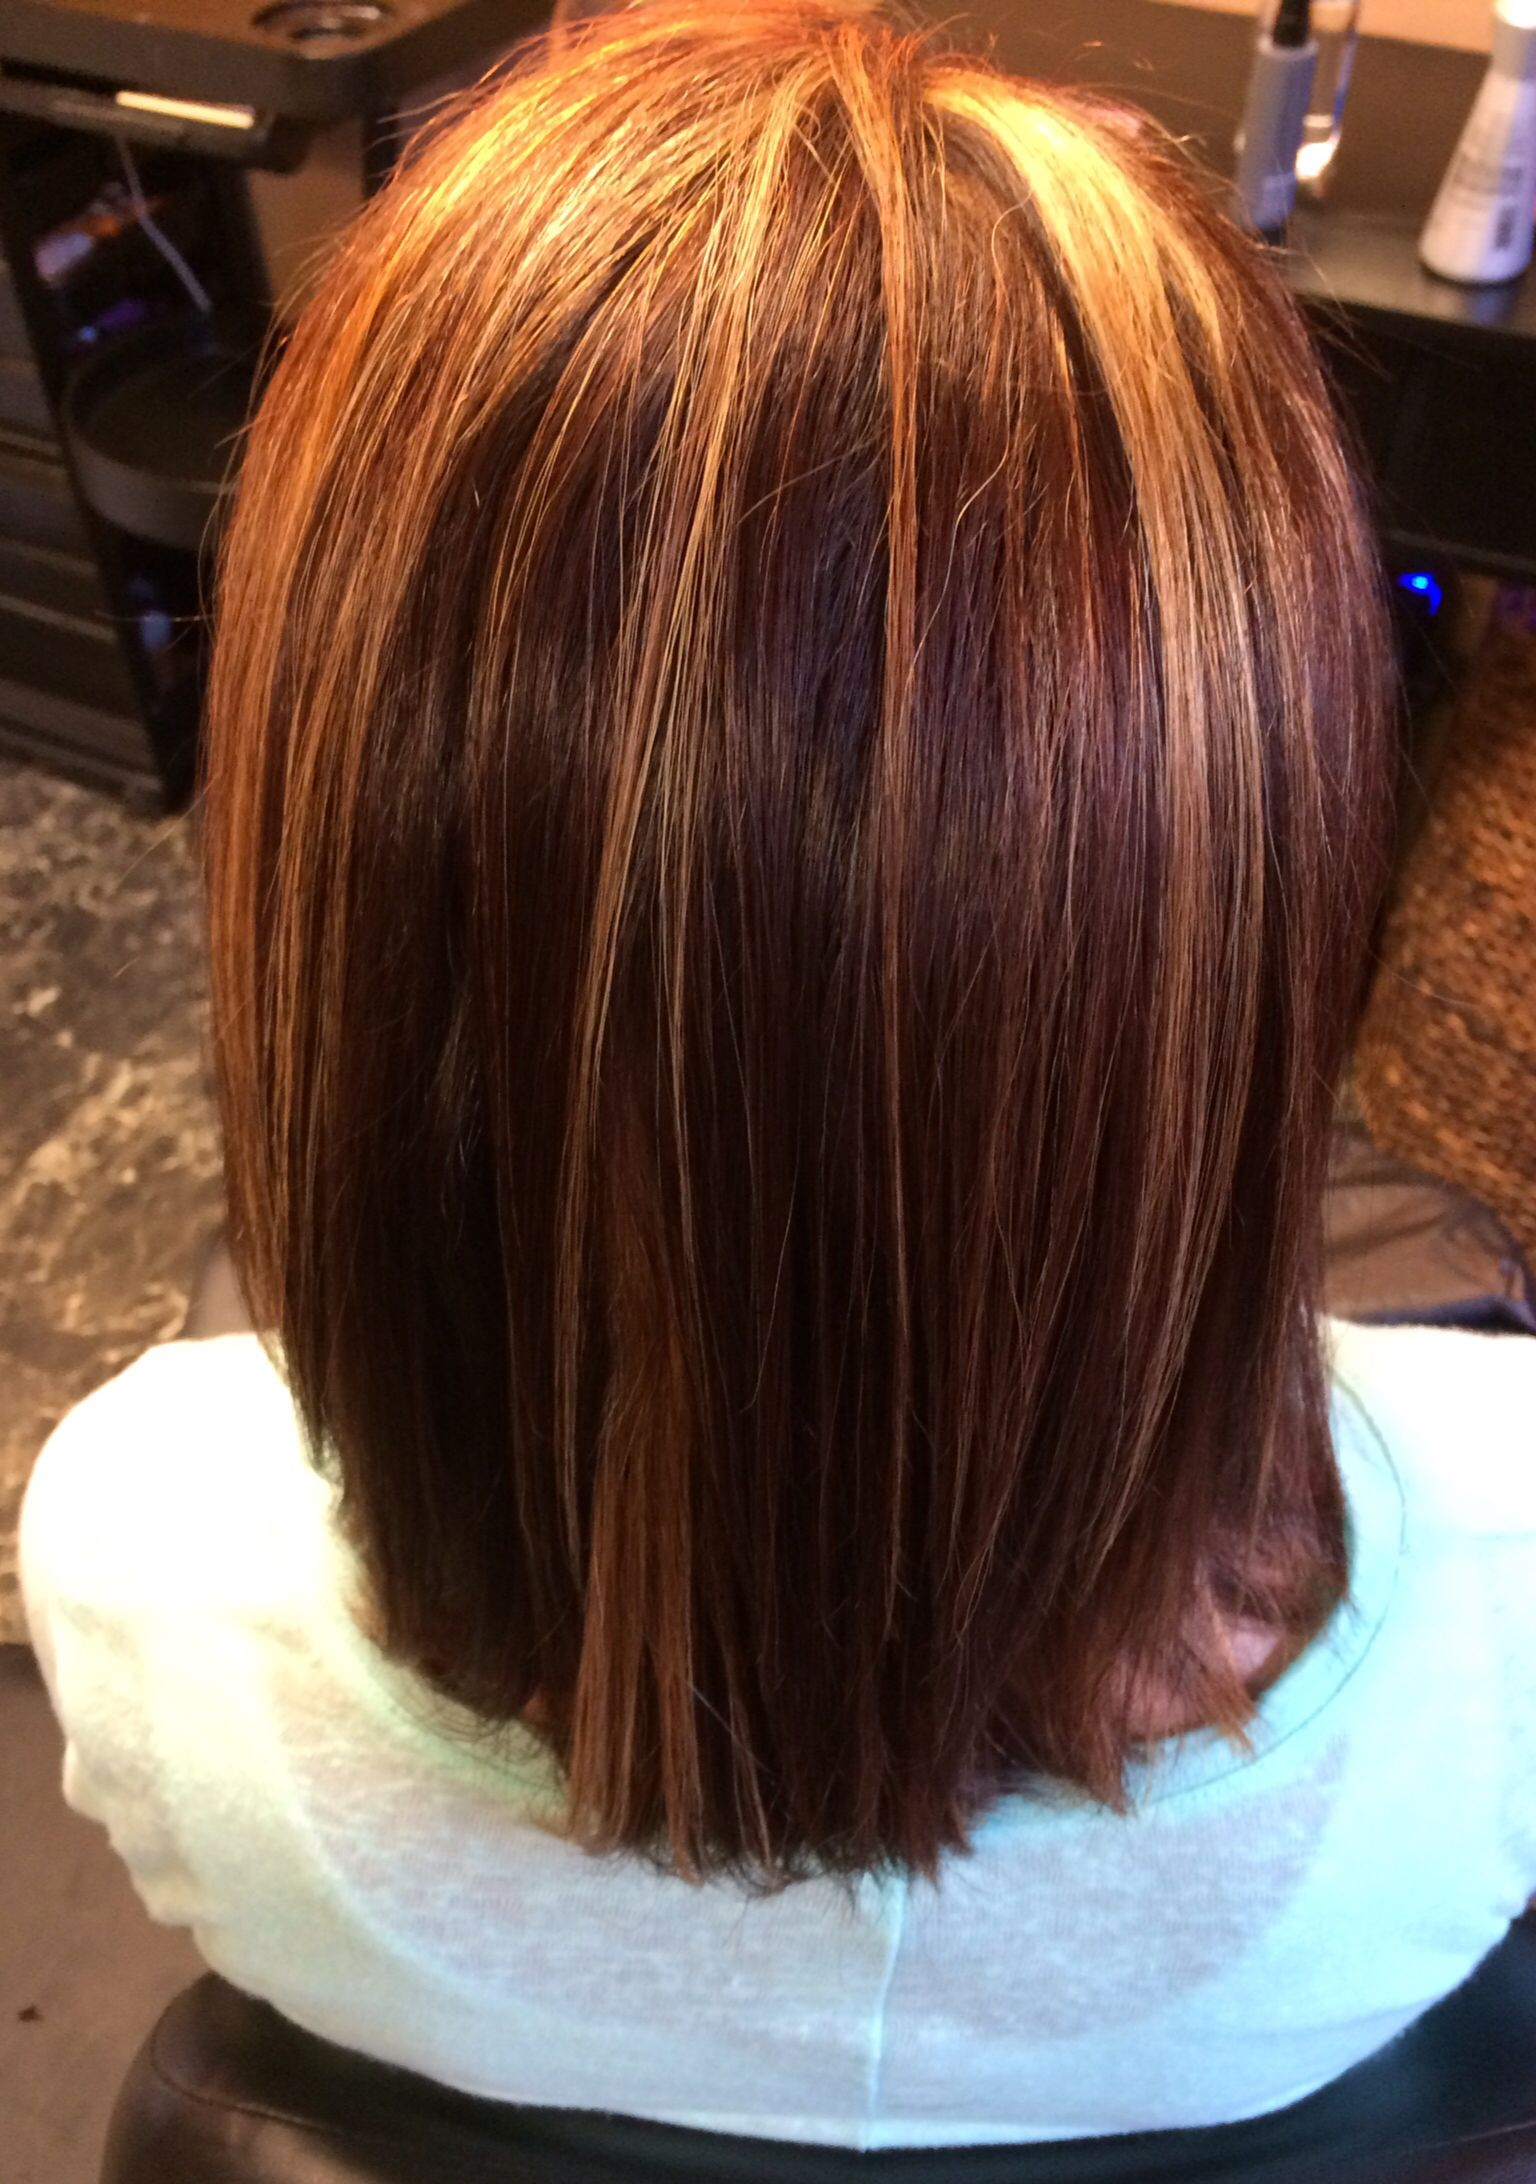 Dark chocolatecopper base with blonde highlights and peekaboo